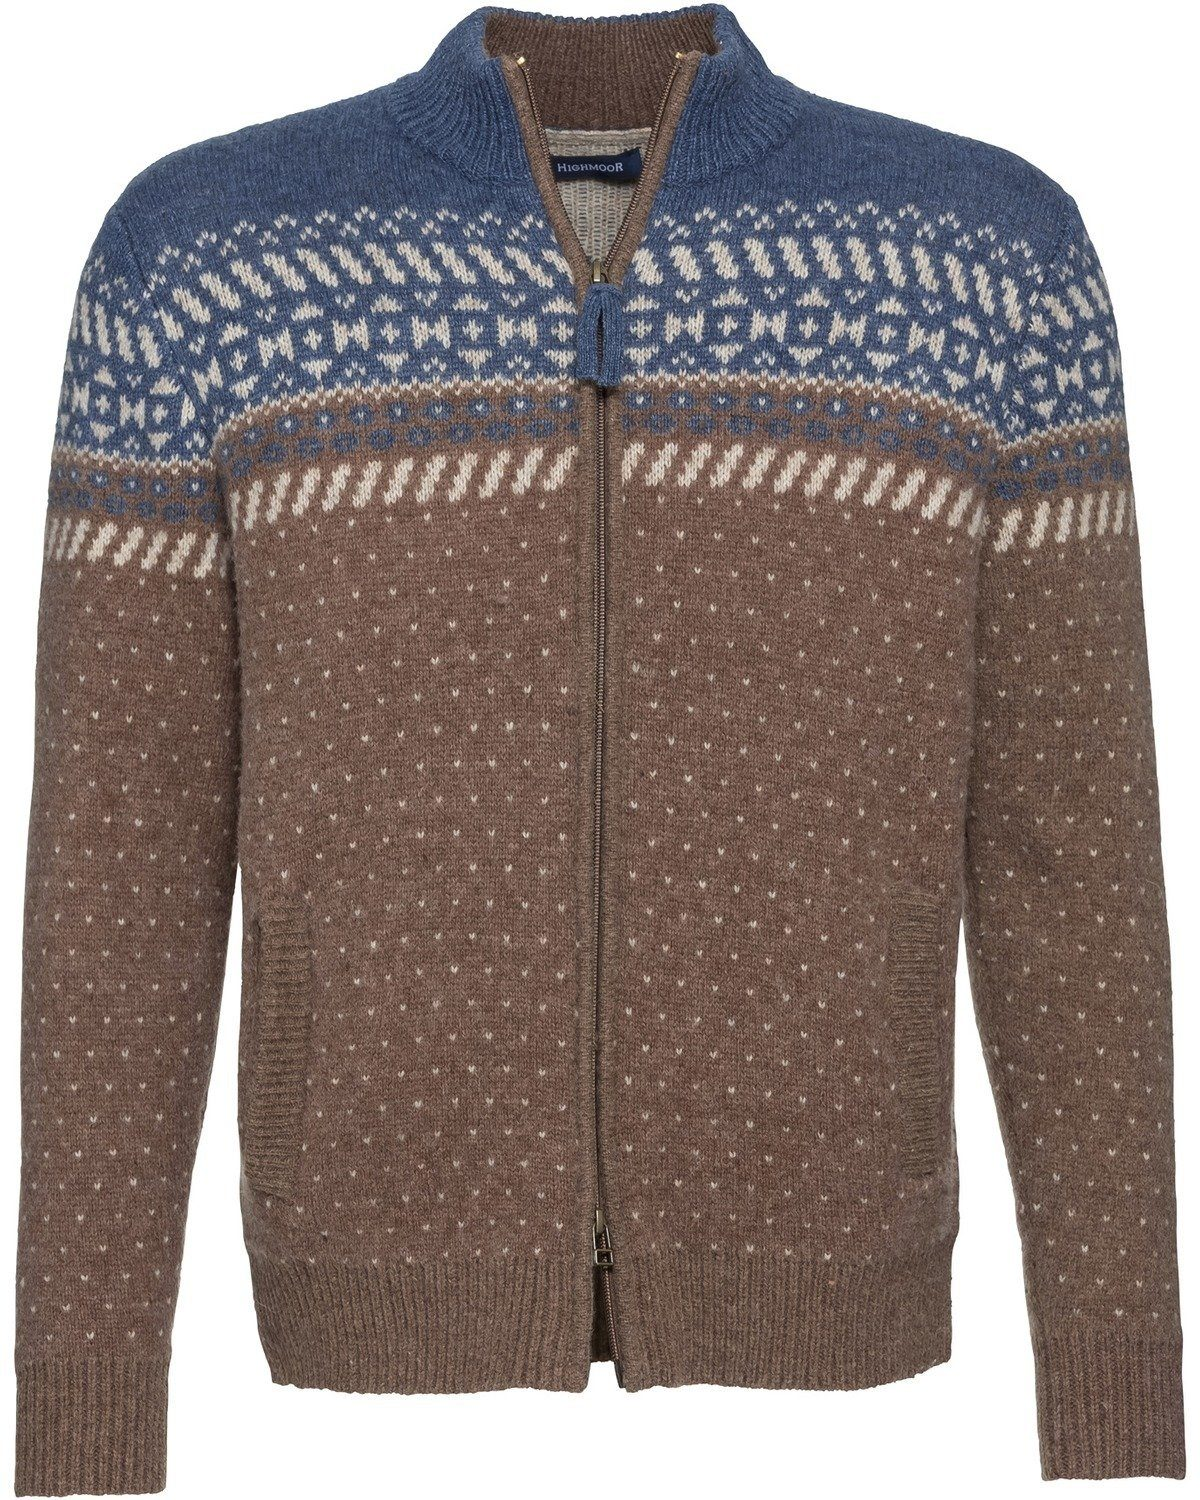 Highmoor Jacquard-Strickjacke